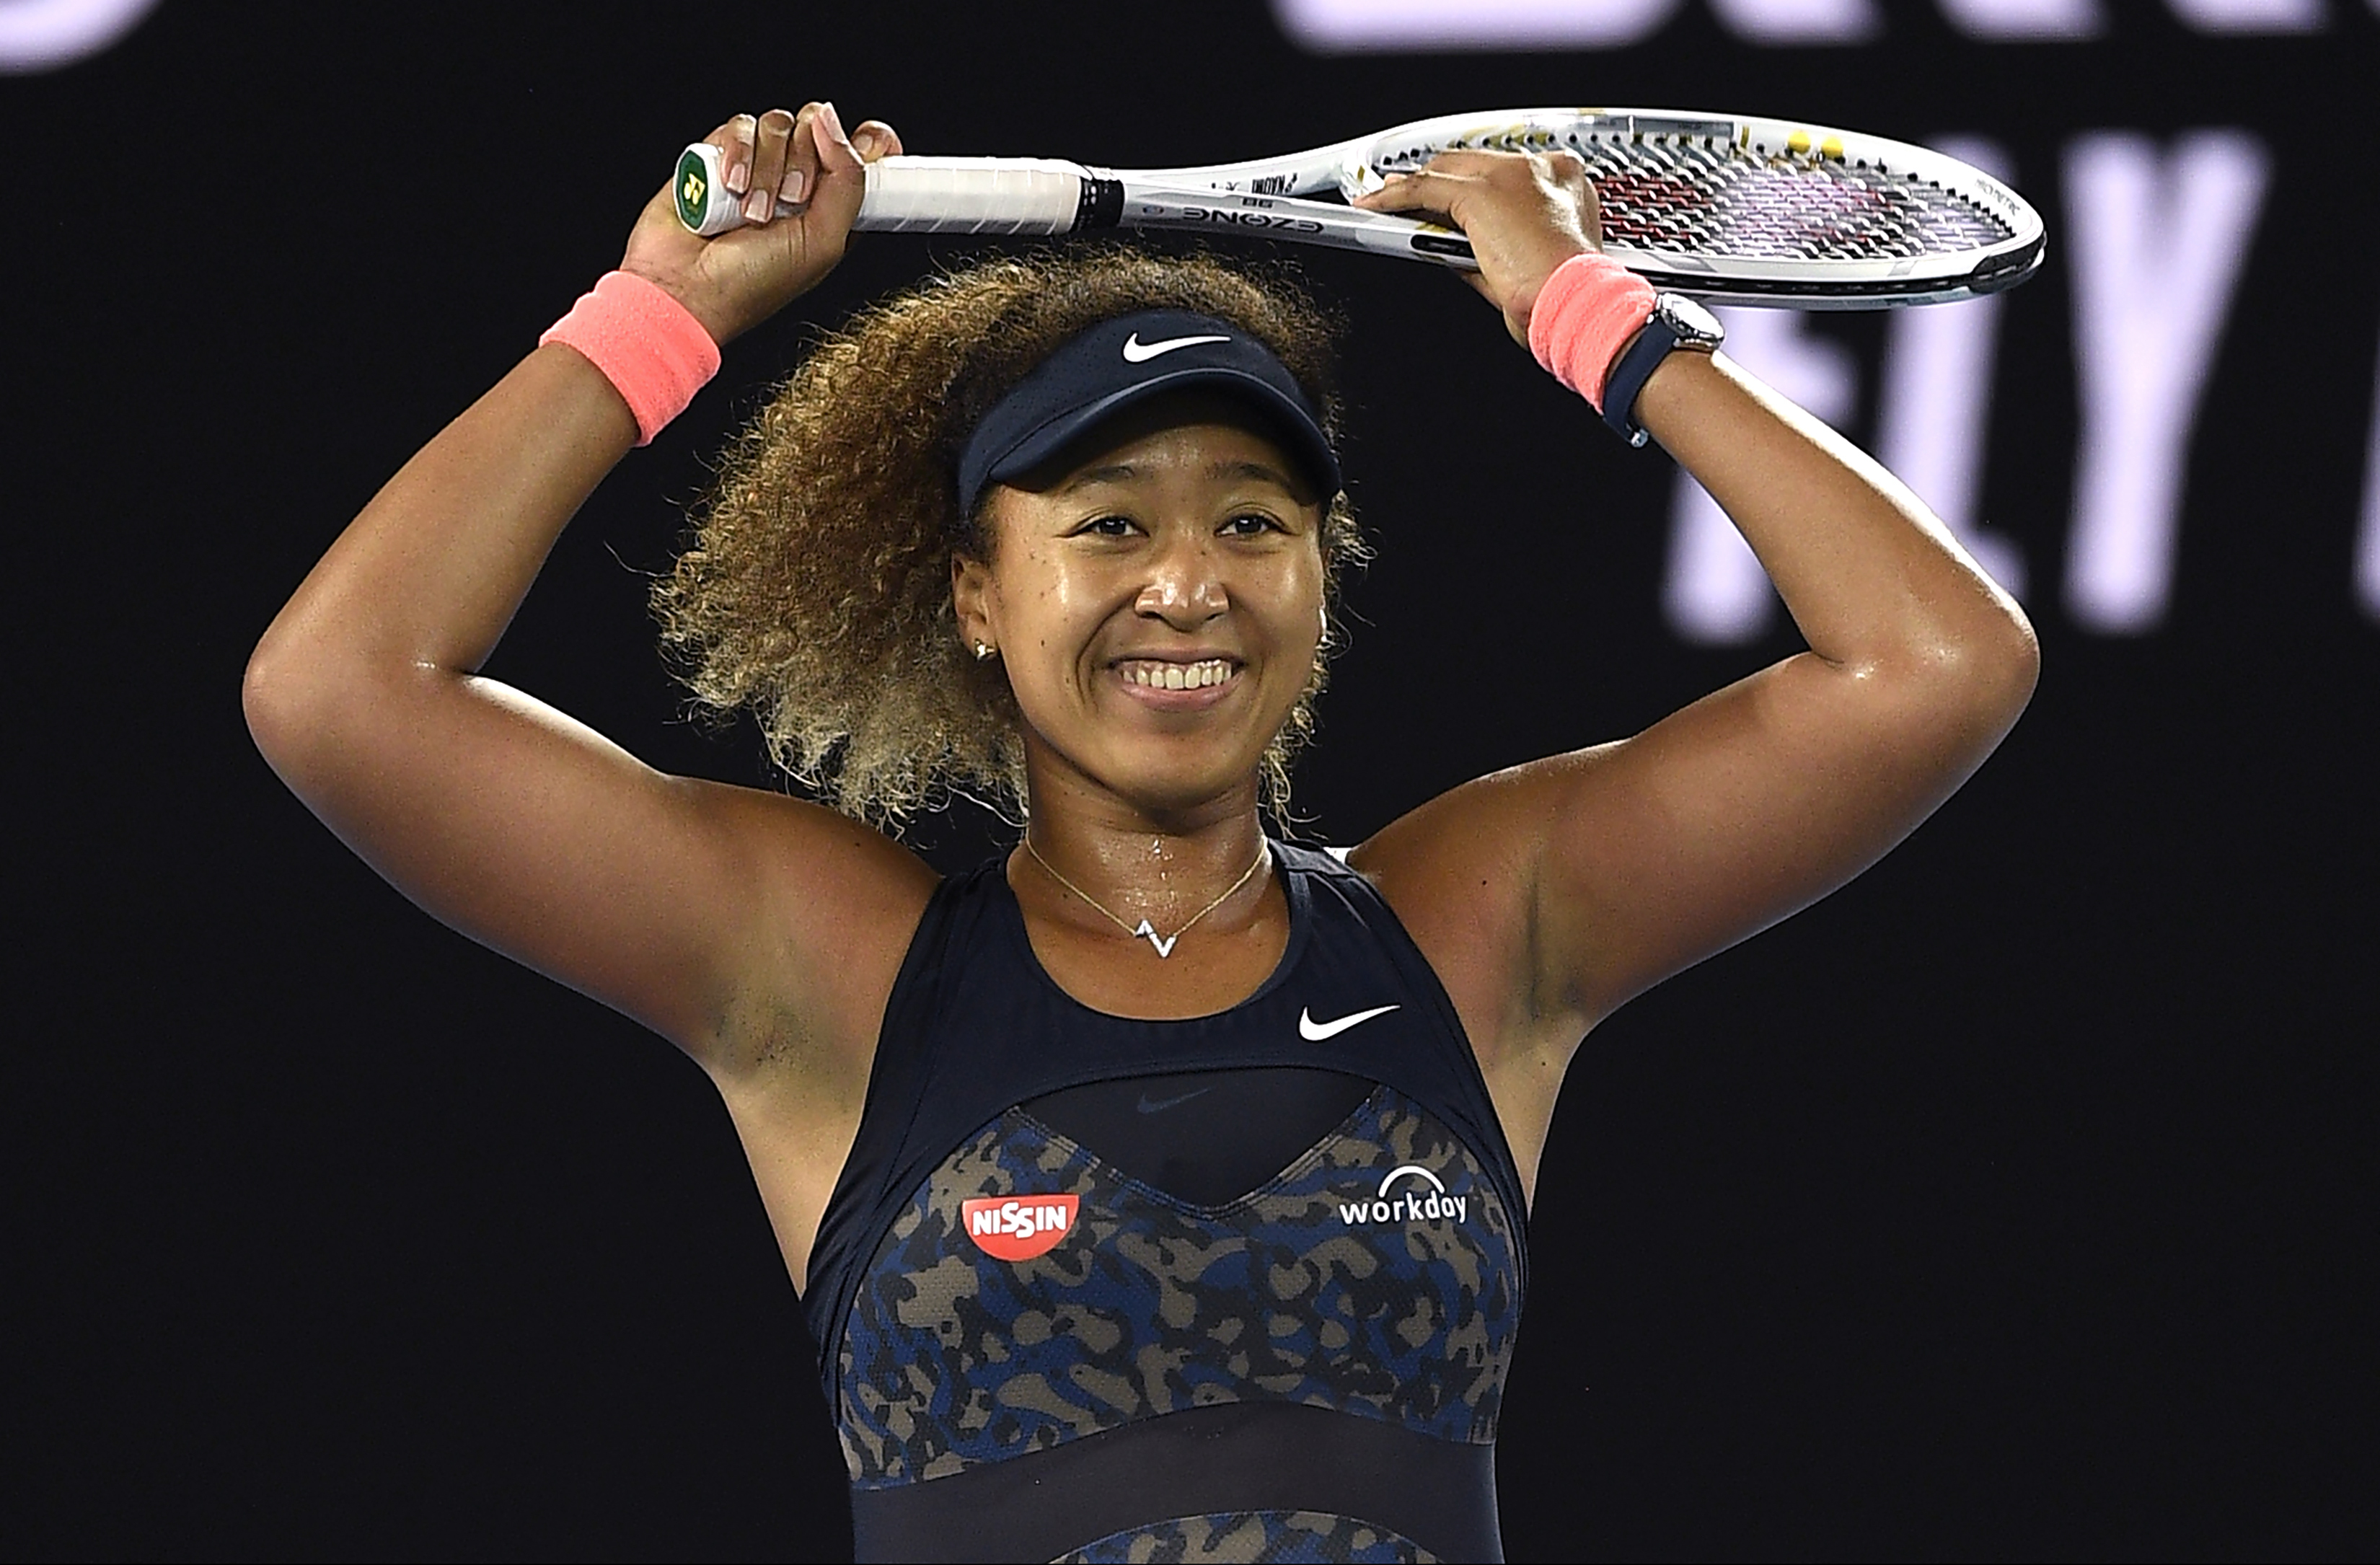 Japan's Naomi Osaka celebrates after defeating United States' Jennifer Brady during the women's singles final at the Australian Open tennis championship in Melbourne, Australia, on Feb. 20, 2021.